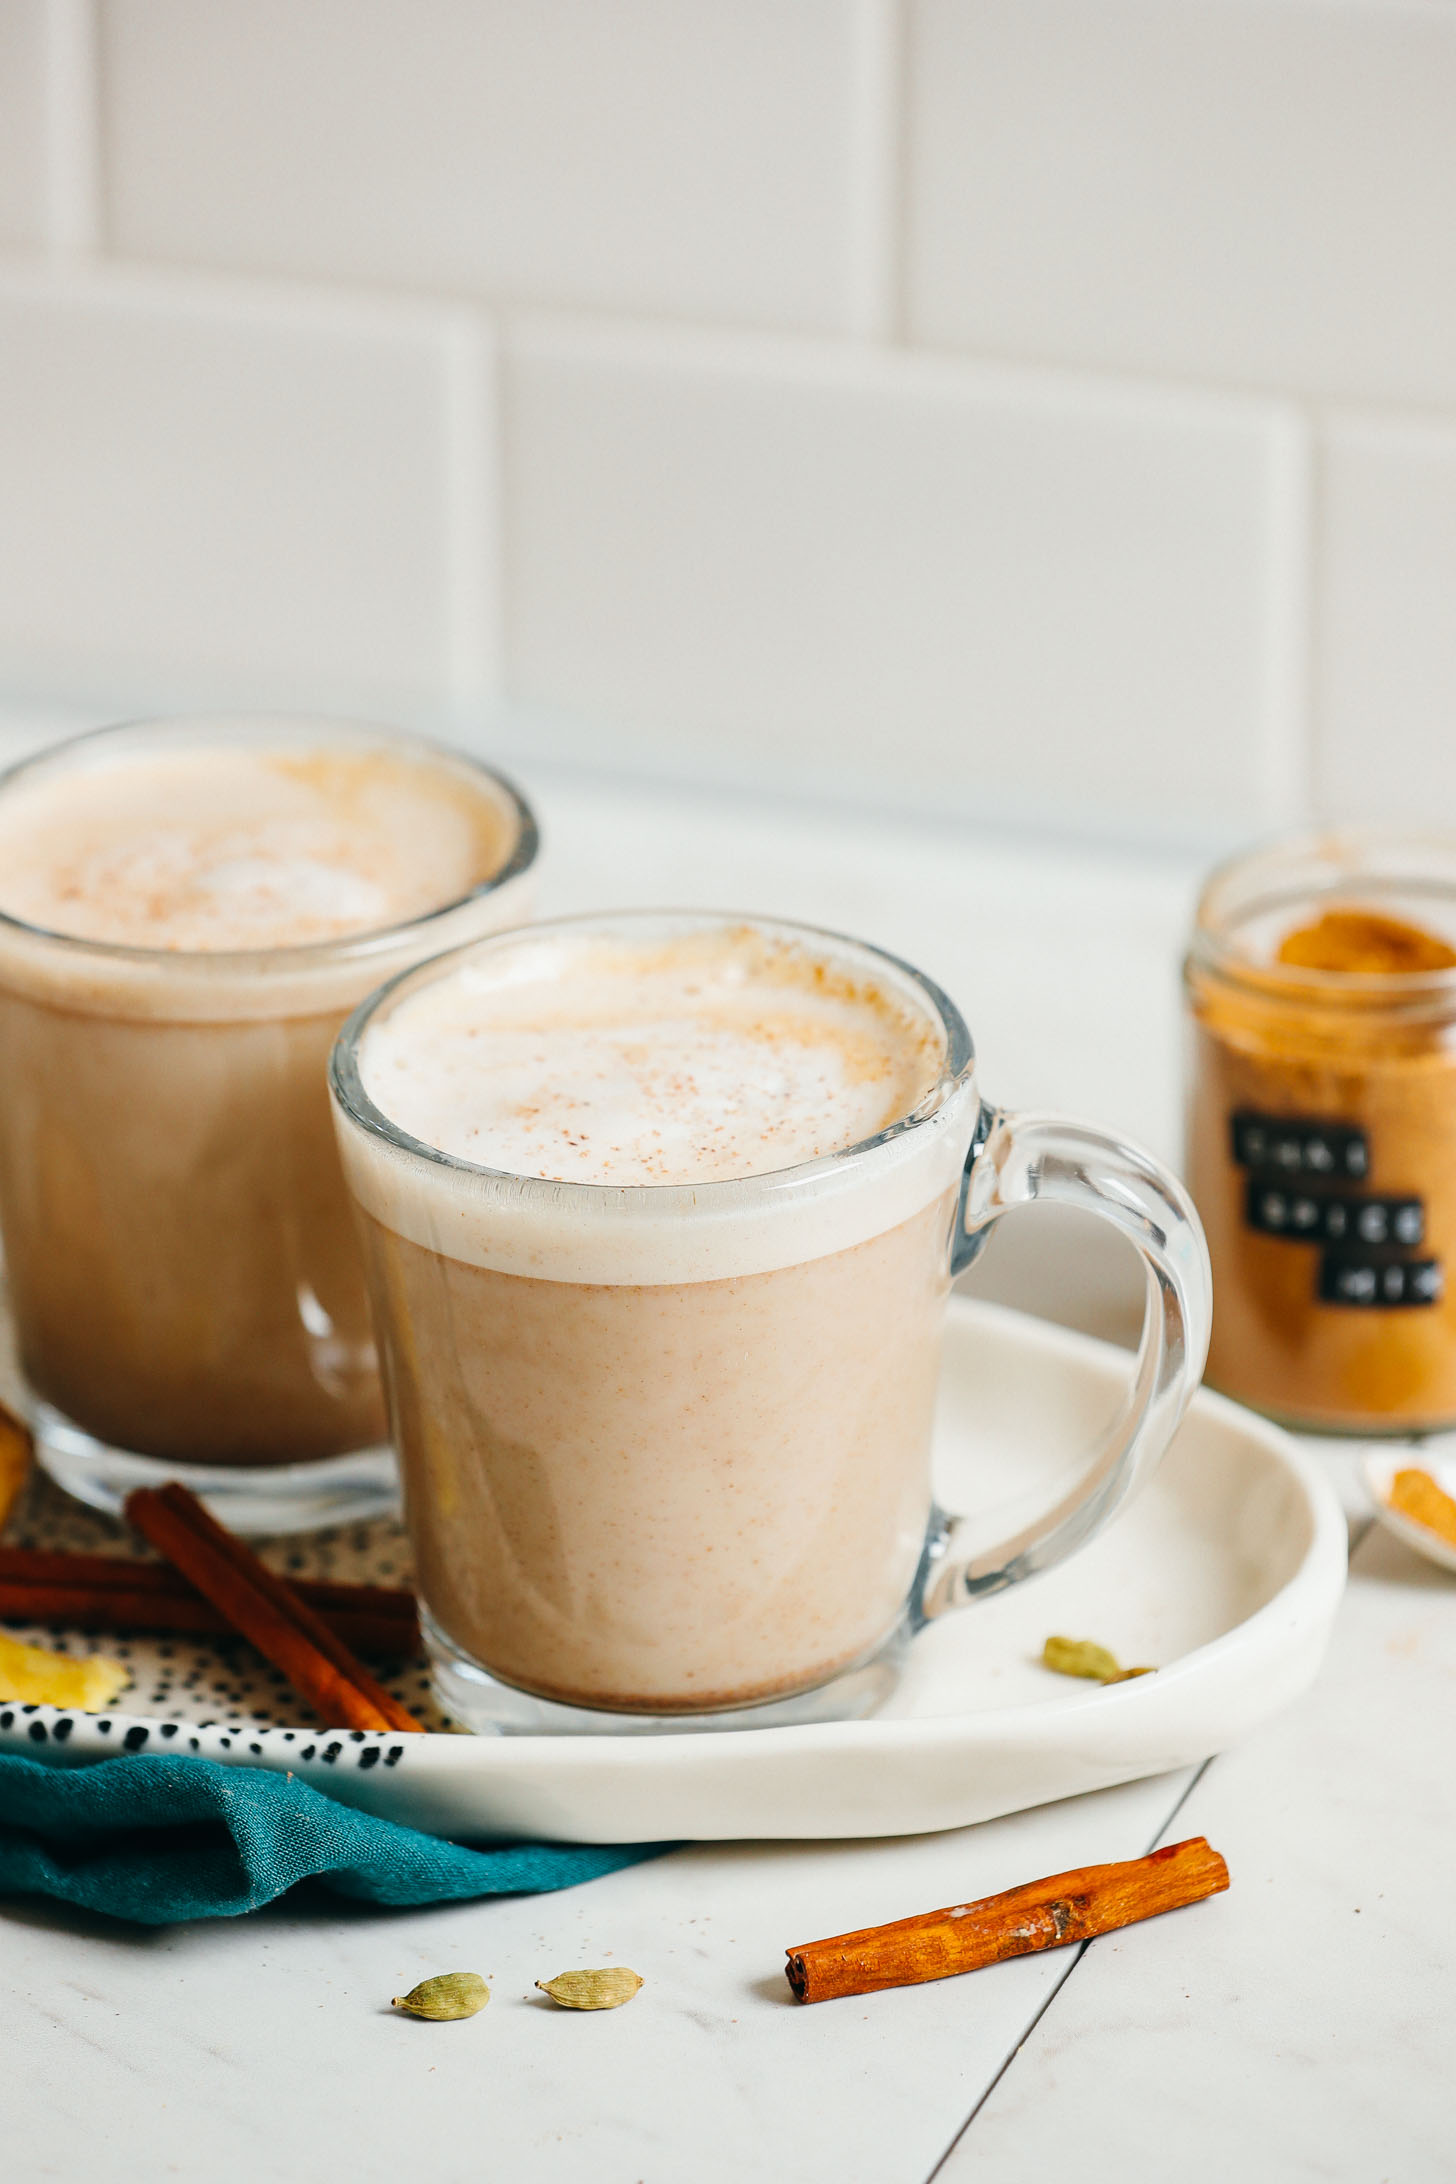 Two vegan chai lattes made with our DIY chai spice mix recipe